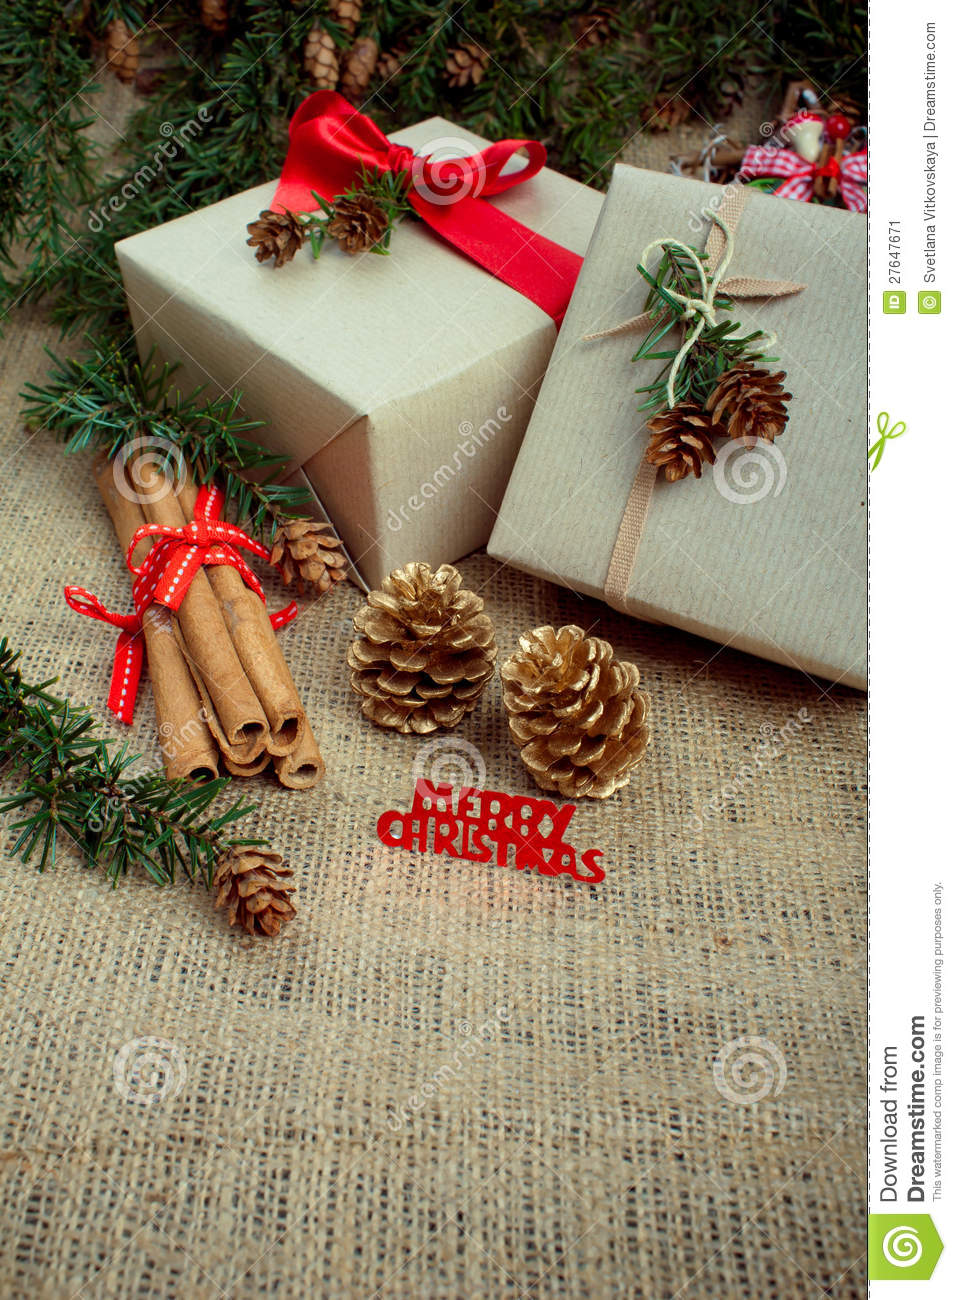 christmas gift boxes and decorations rustic style - Christmas Gift Box Decorations